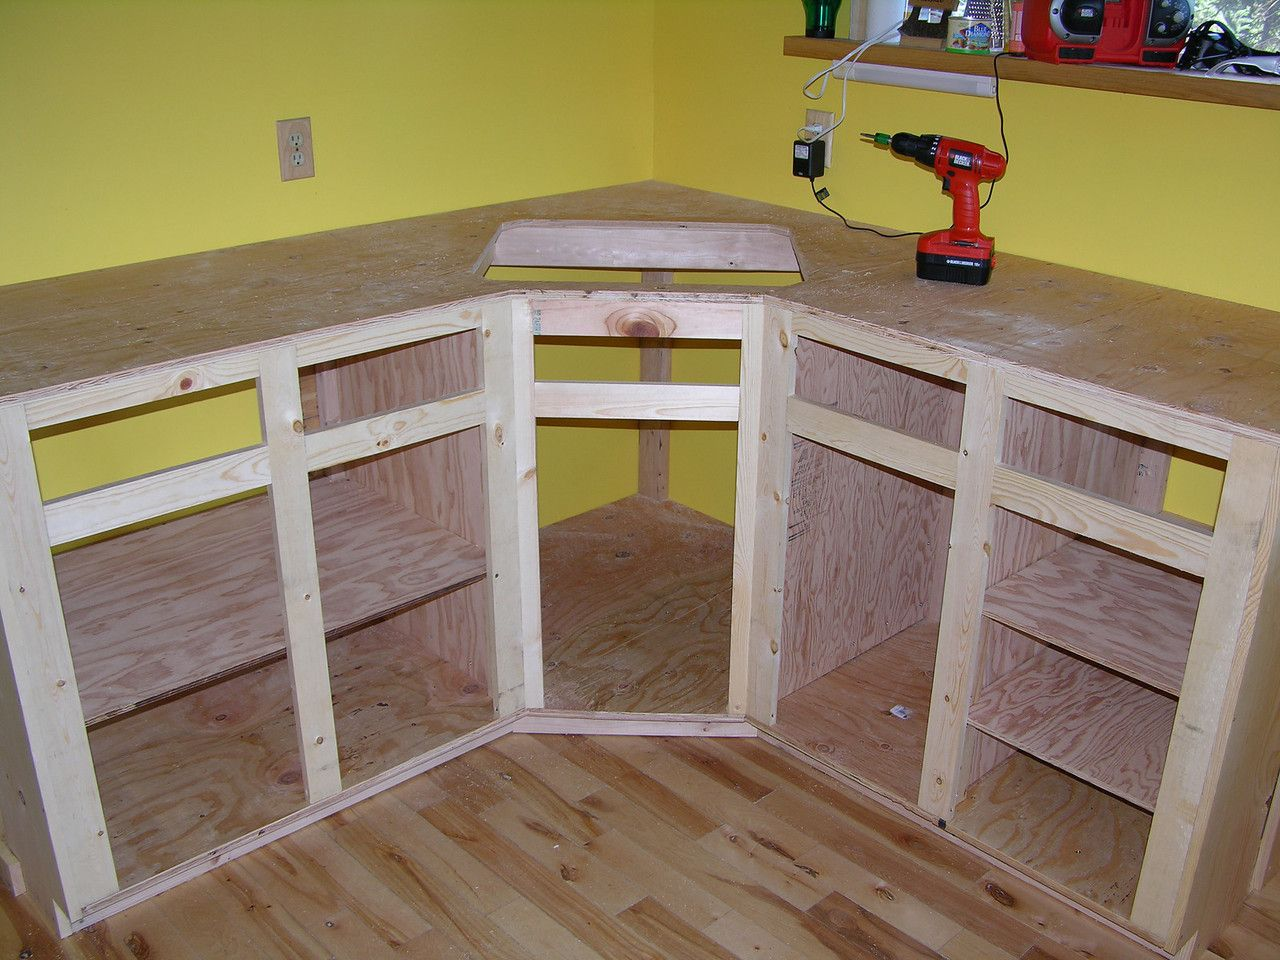 How To Build Kitchen Cabinet Frame Kitchen Reno Building